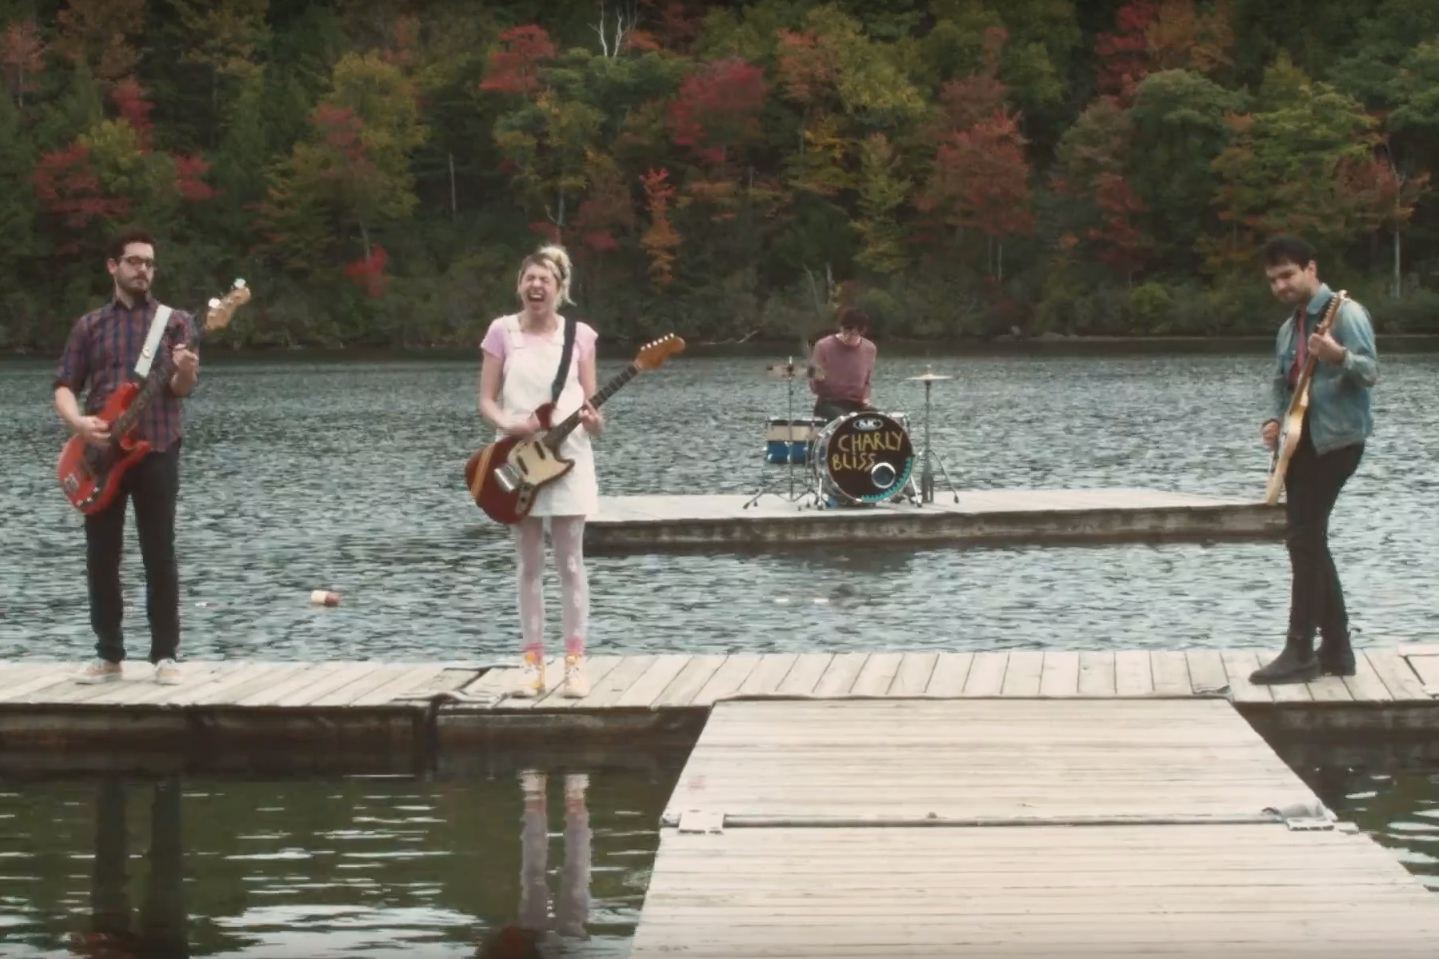 charly-bliss-westermarck-video-1497365782